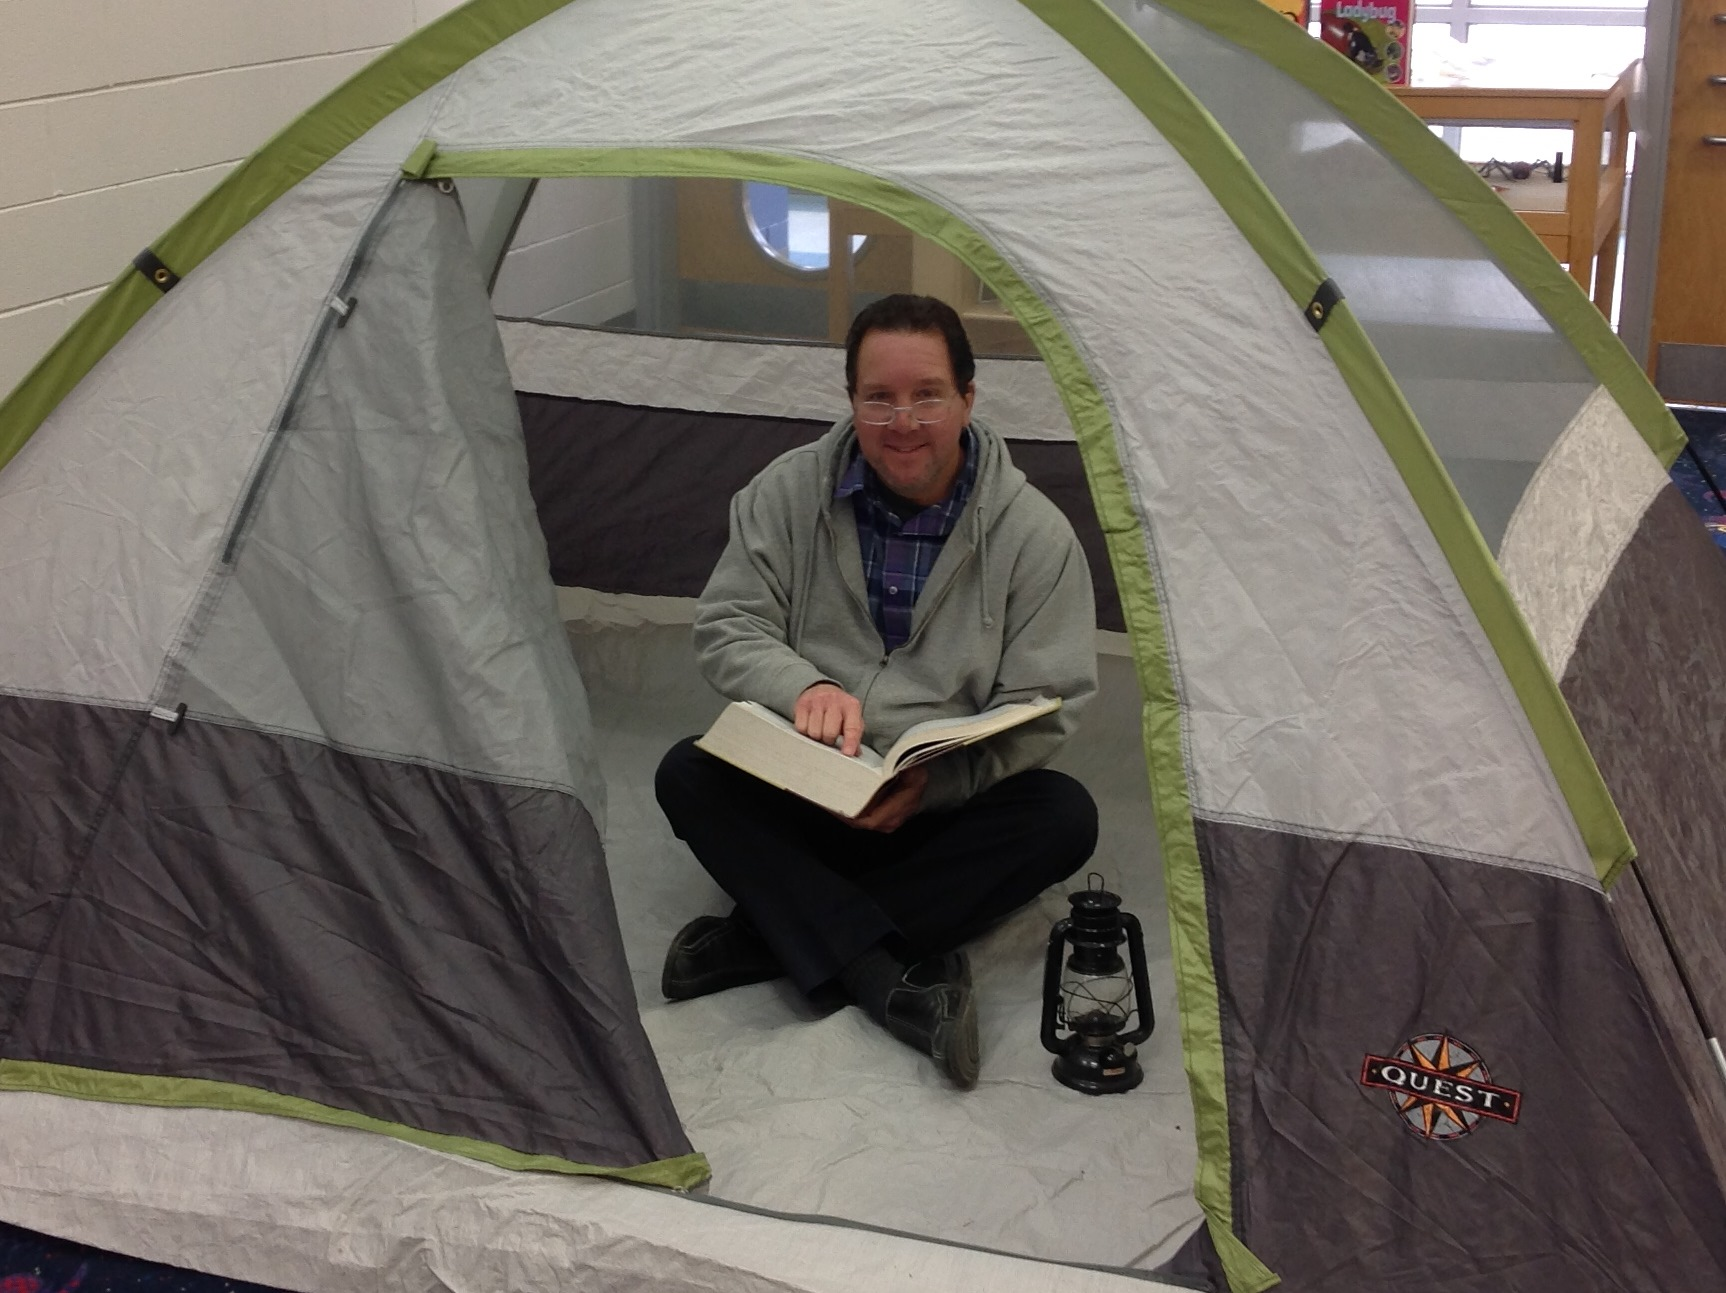 Mr. Lawson reads in a tent